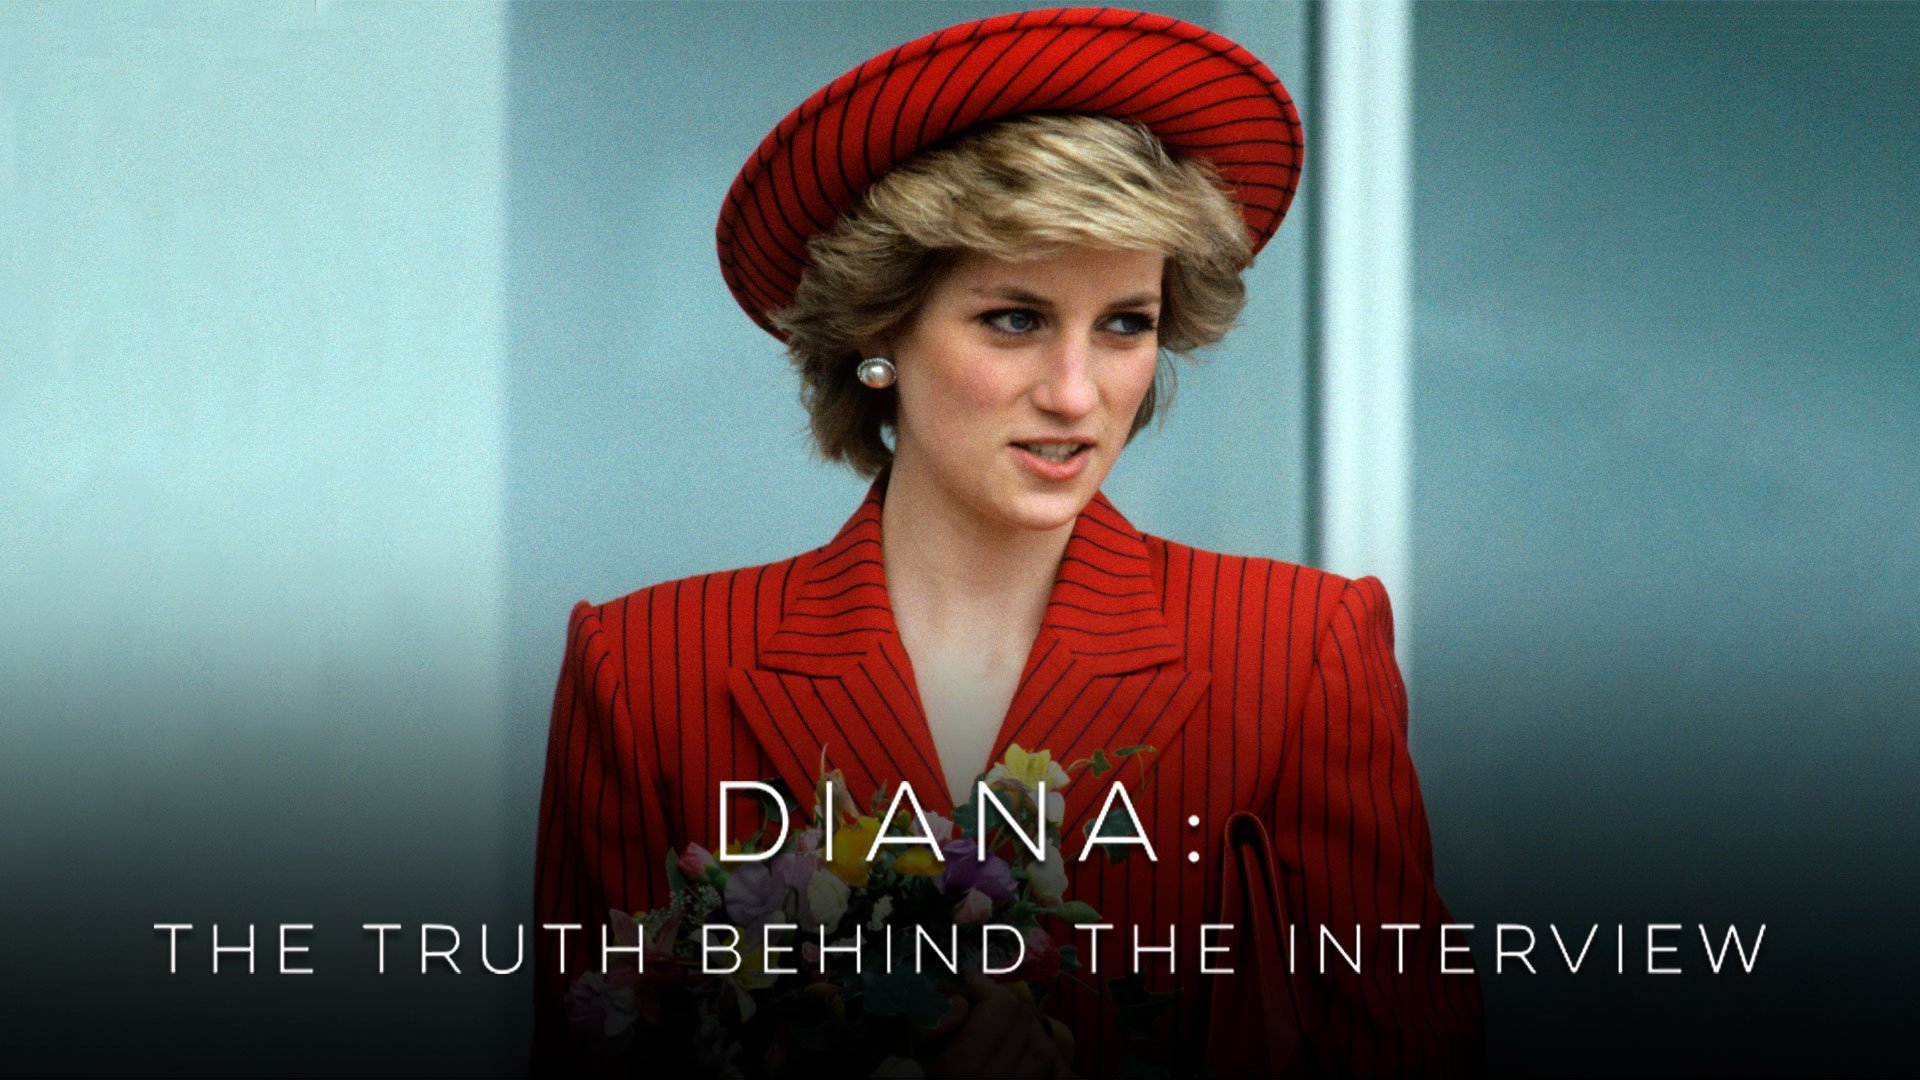 Diana: The Truth Behind the Interview on BritBox UK